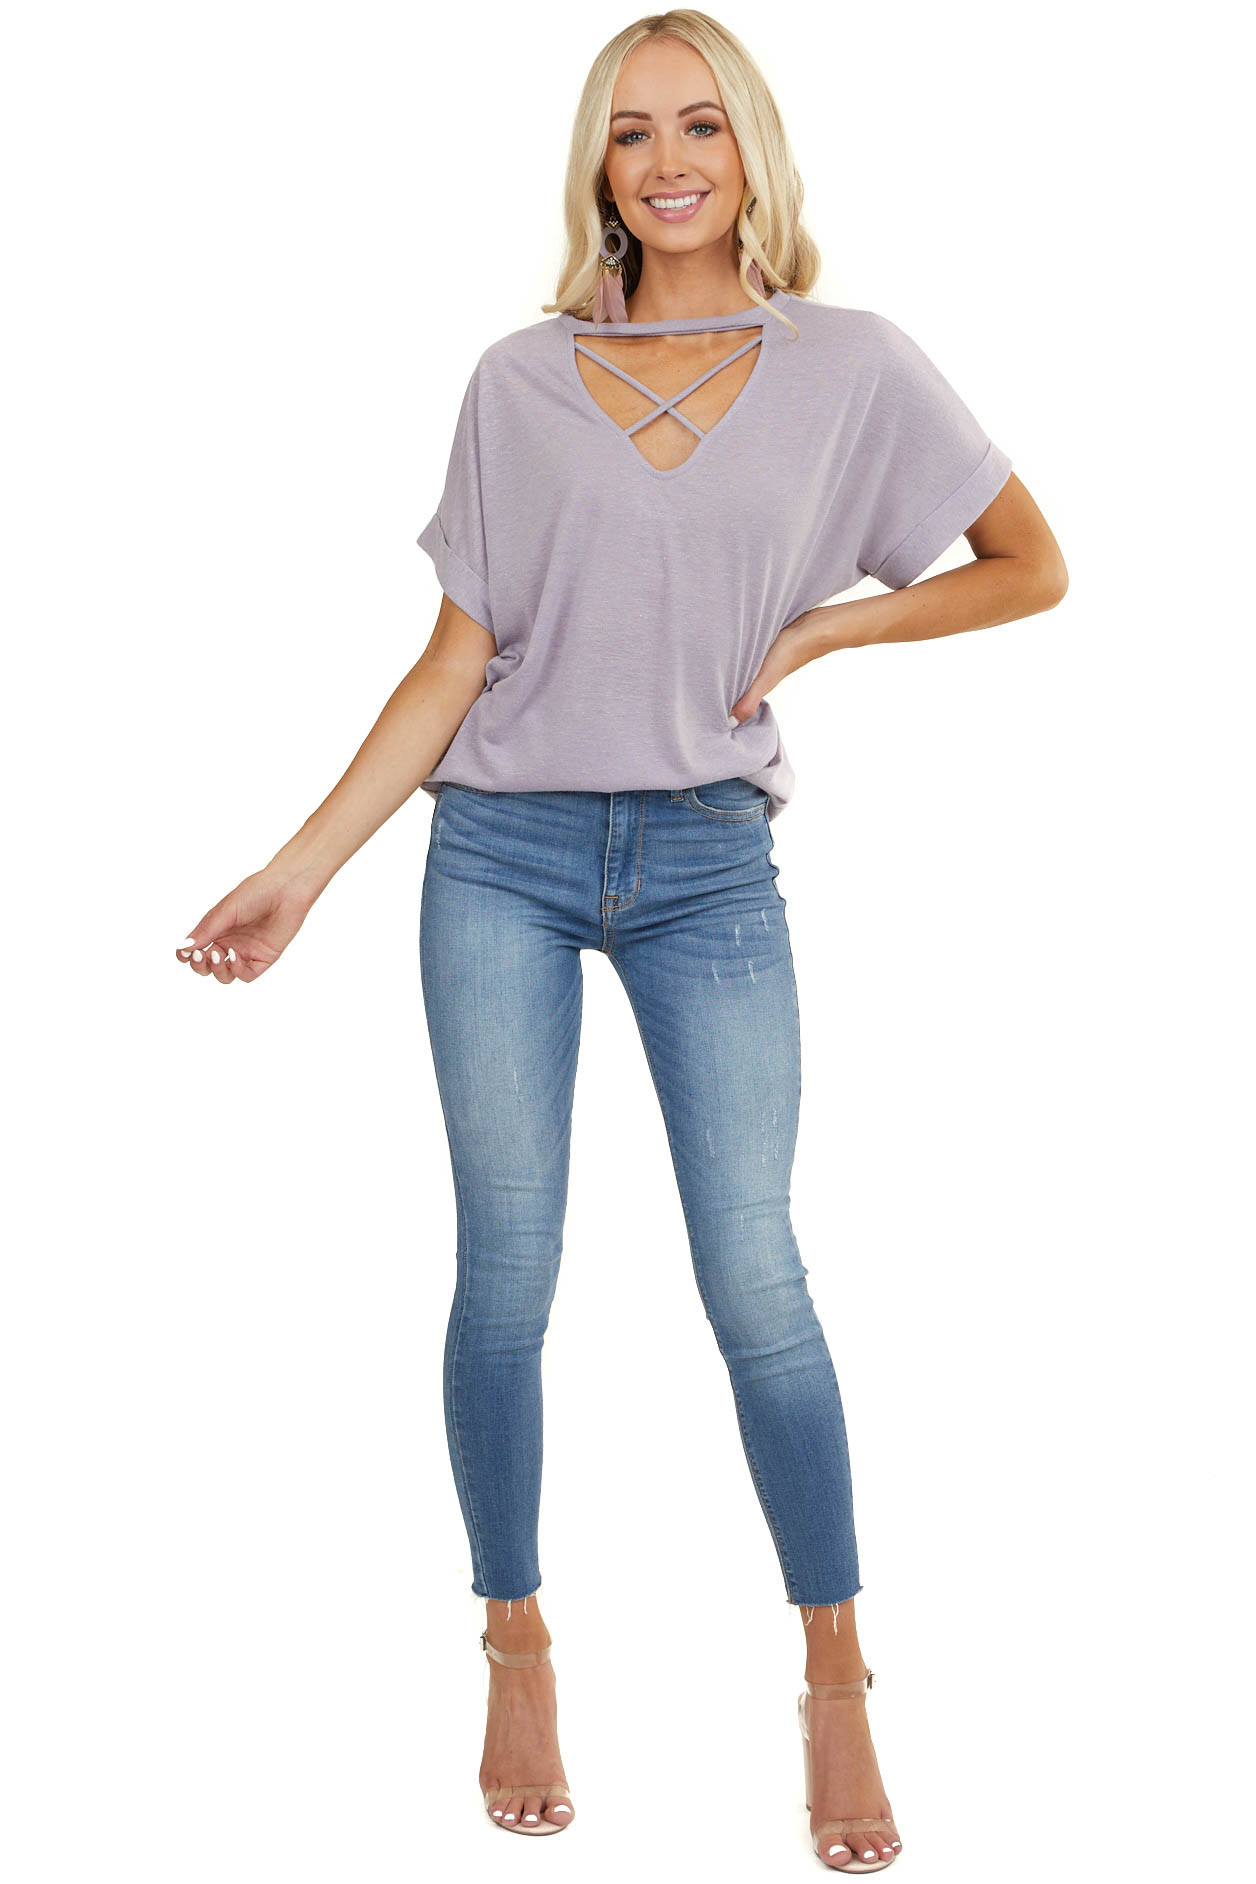 Heathered Lavender Short Sleeve Top with Criss Cross Detail